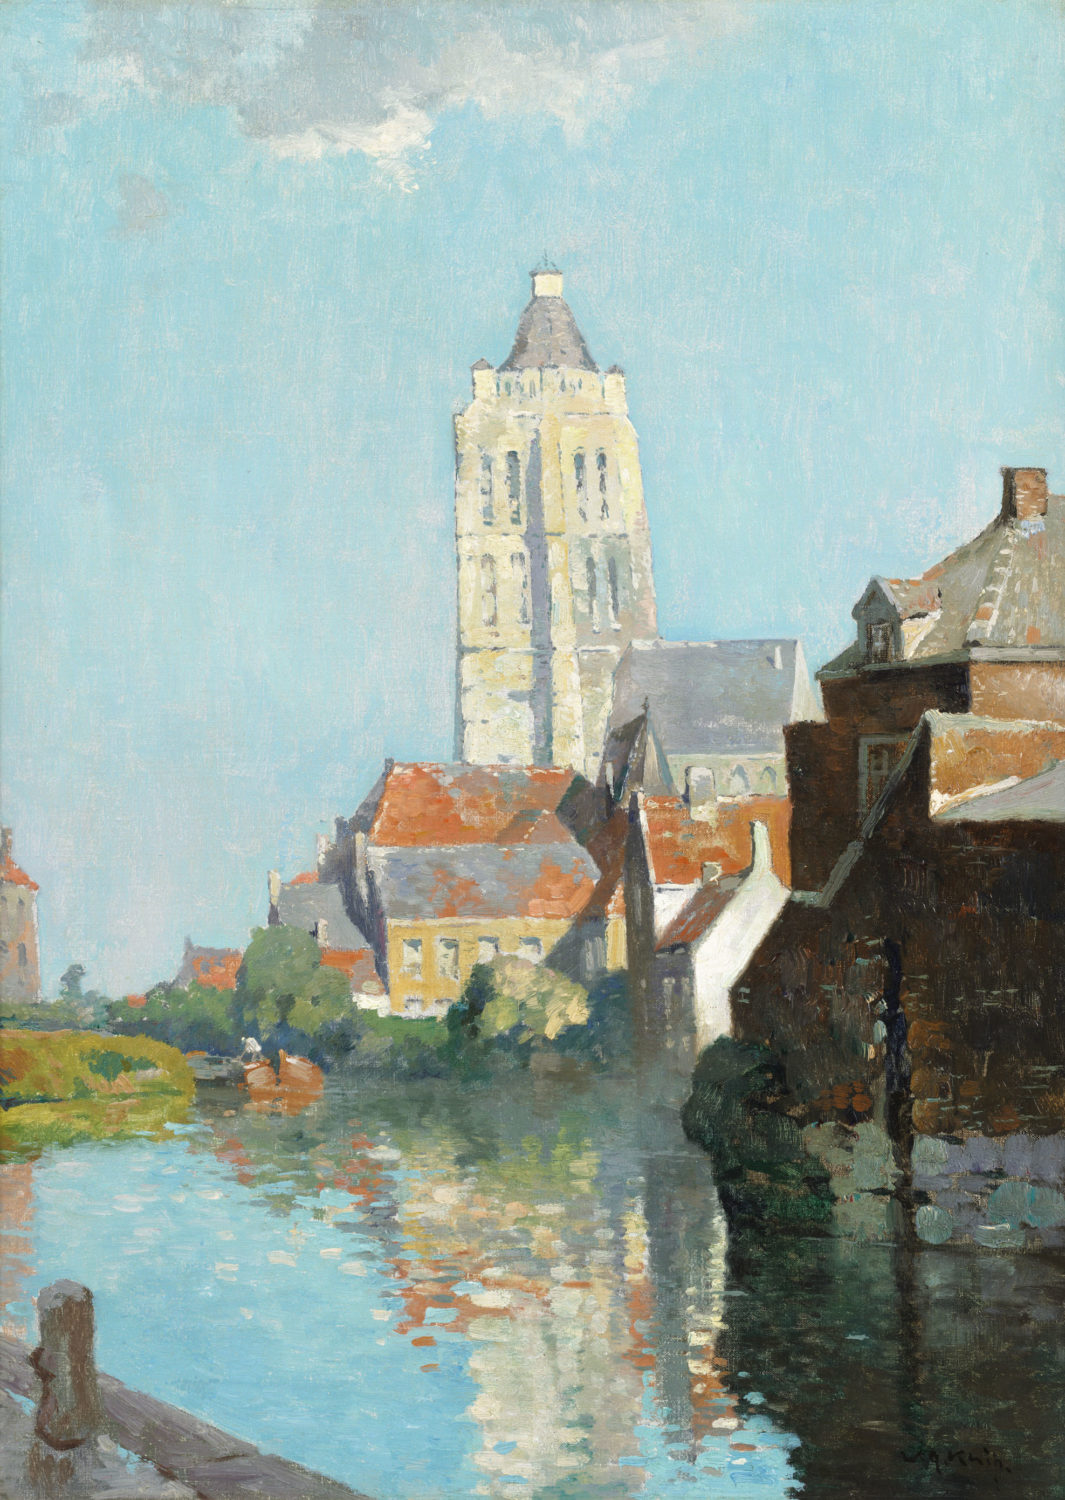 Willem Knip| A view of Oudenaarde with the Sint-Walburga church in the distance| Kunsthandel Bies| Bies Gallery